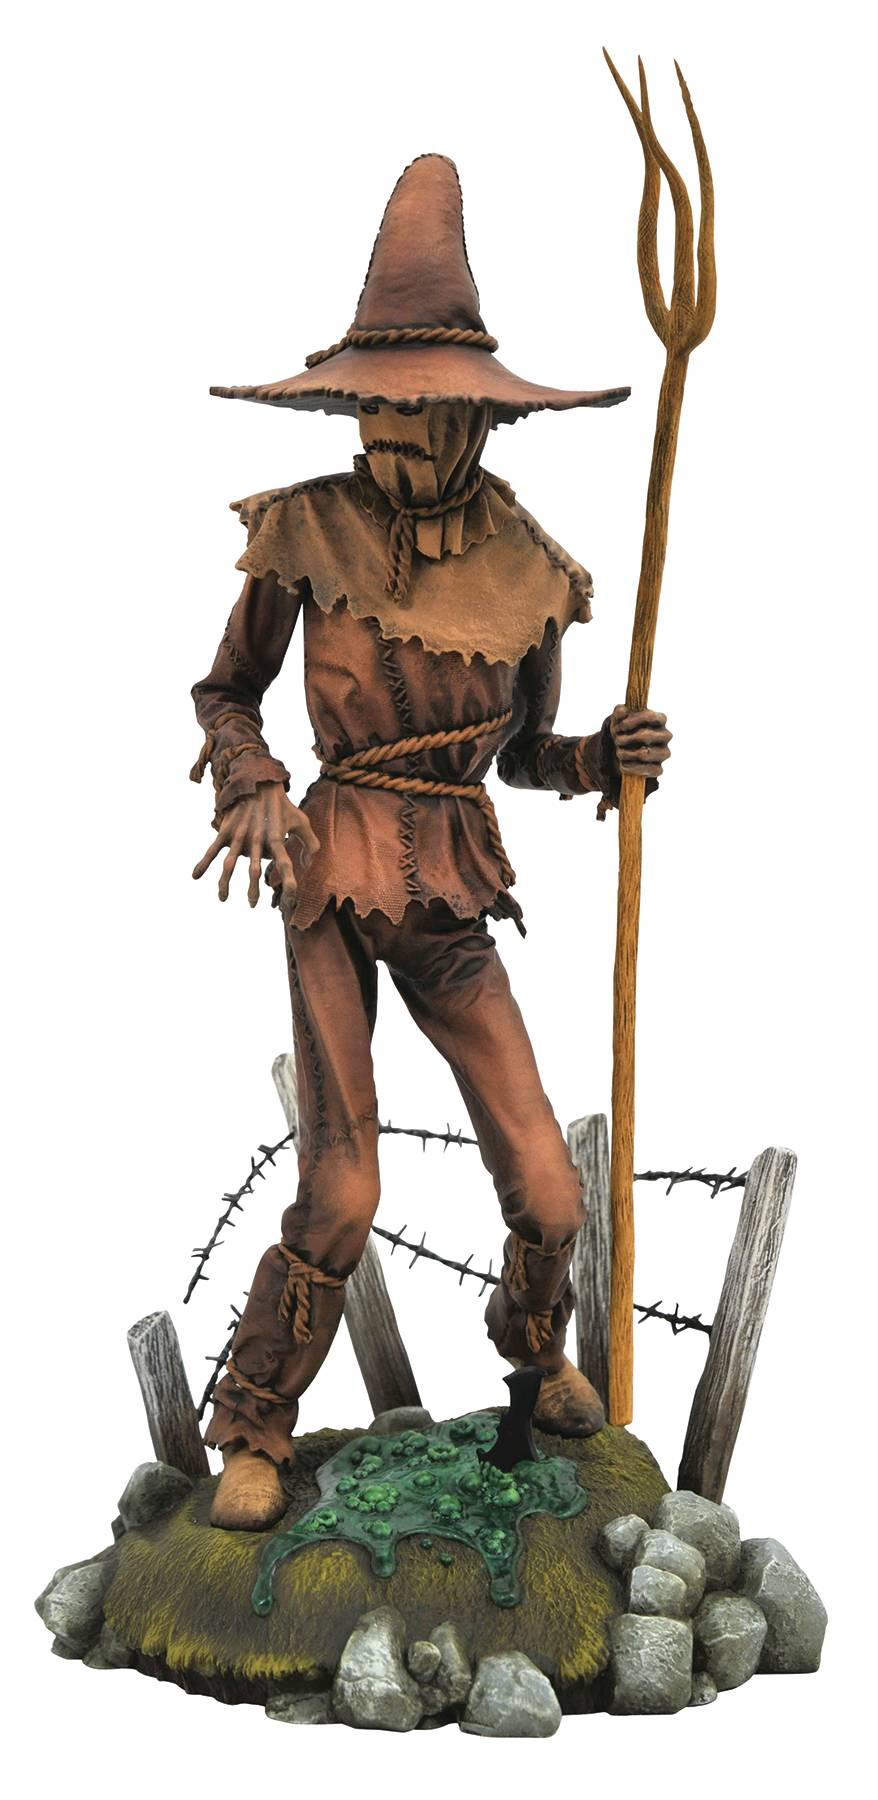 Diamond DC Comics Gallery Scarecrow Statue